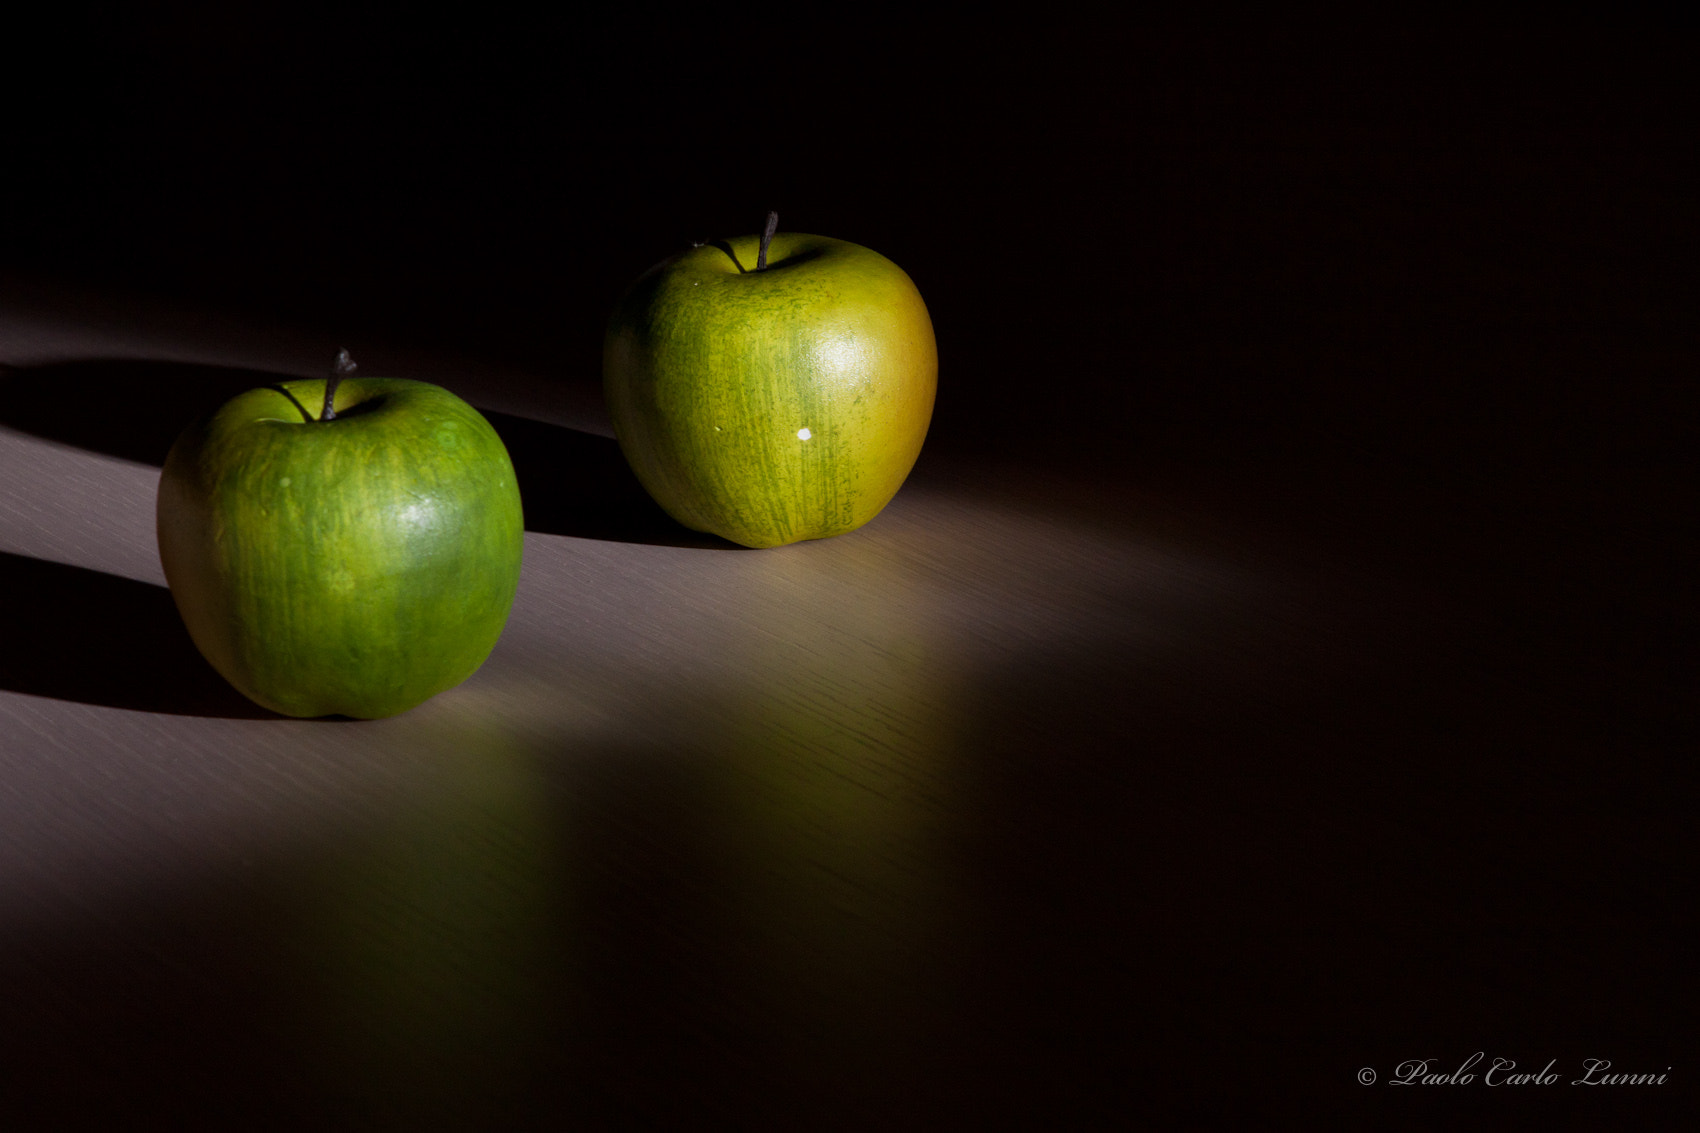 Photograph apples by Paolo Carlo Lunni on 500px